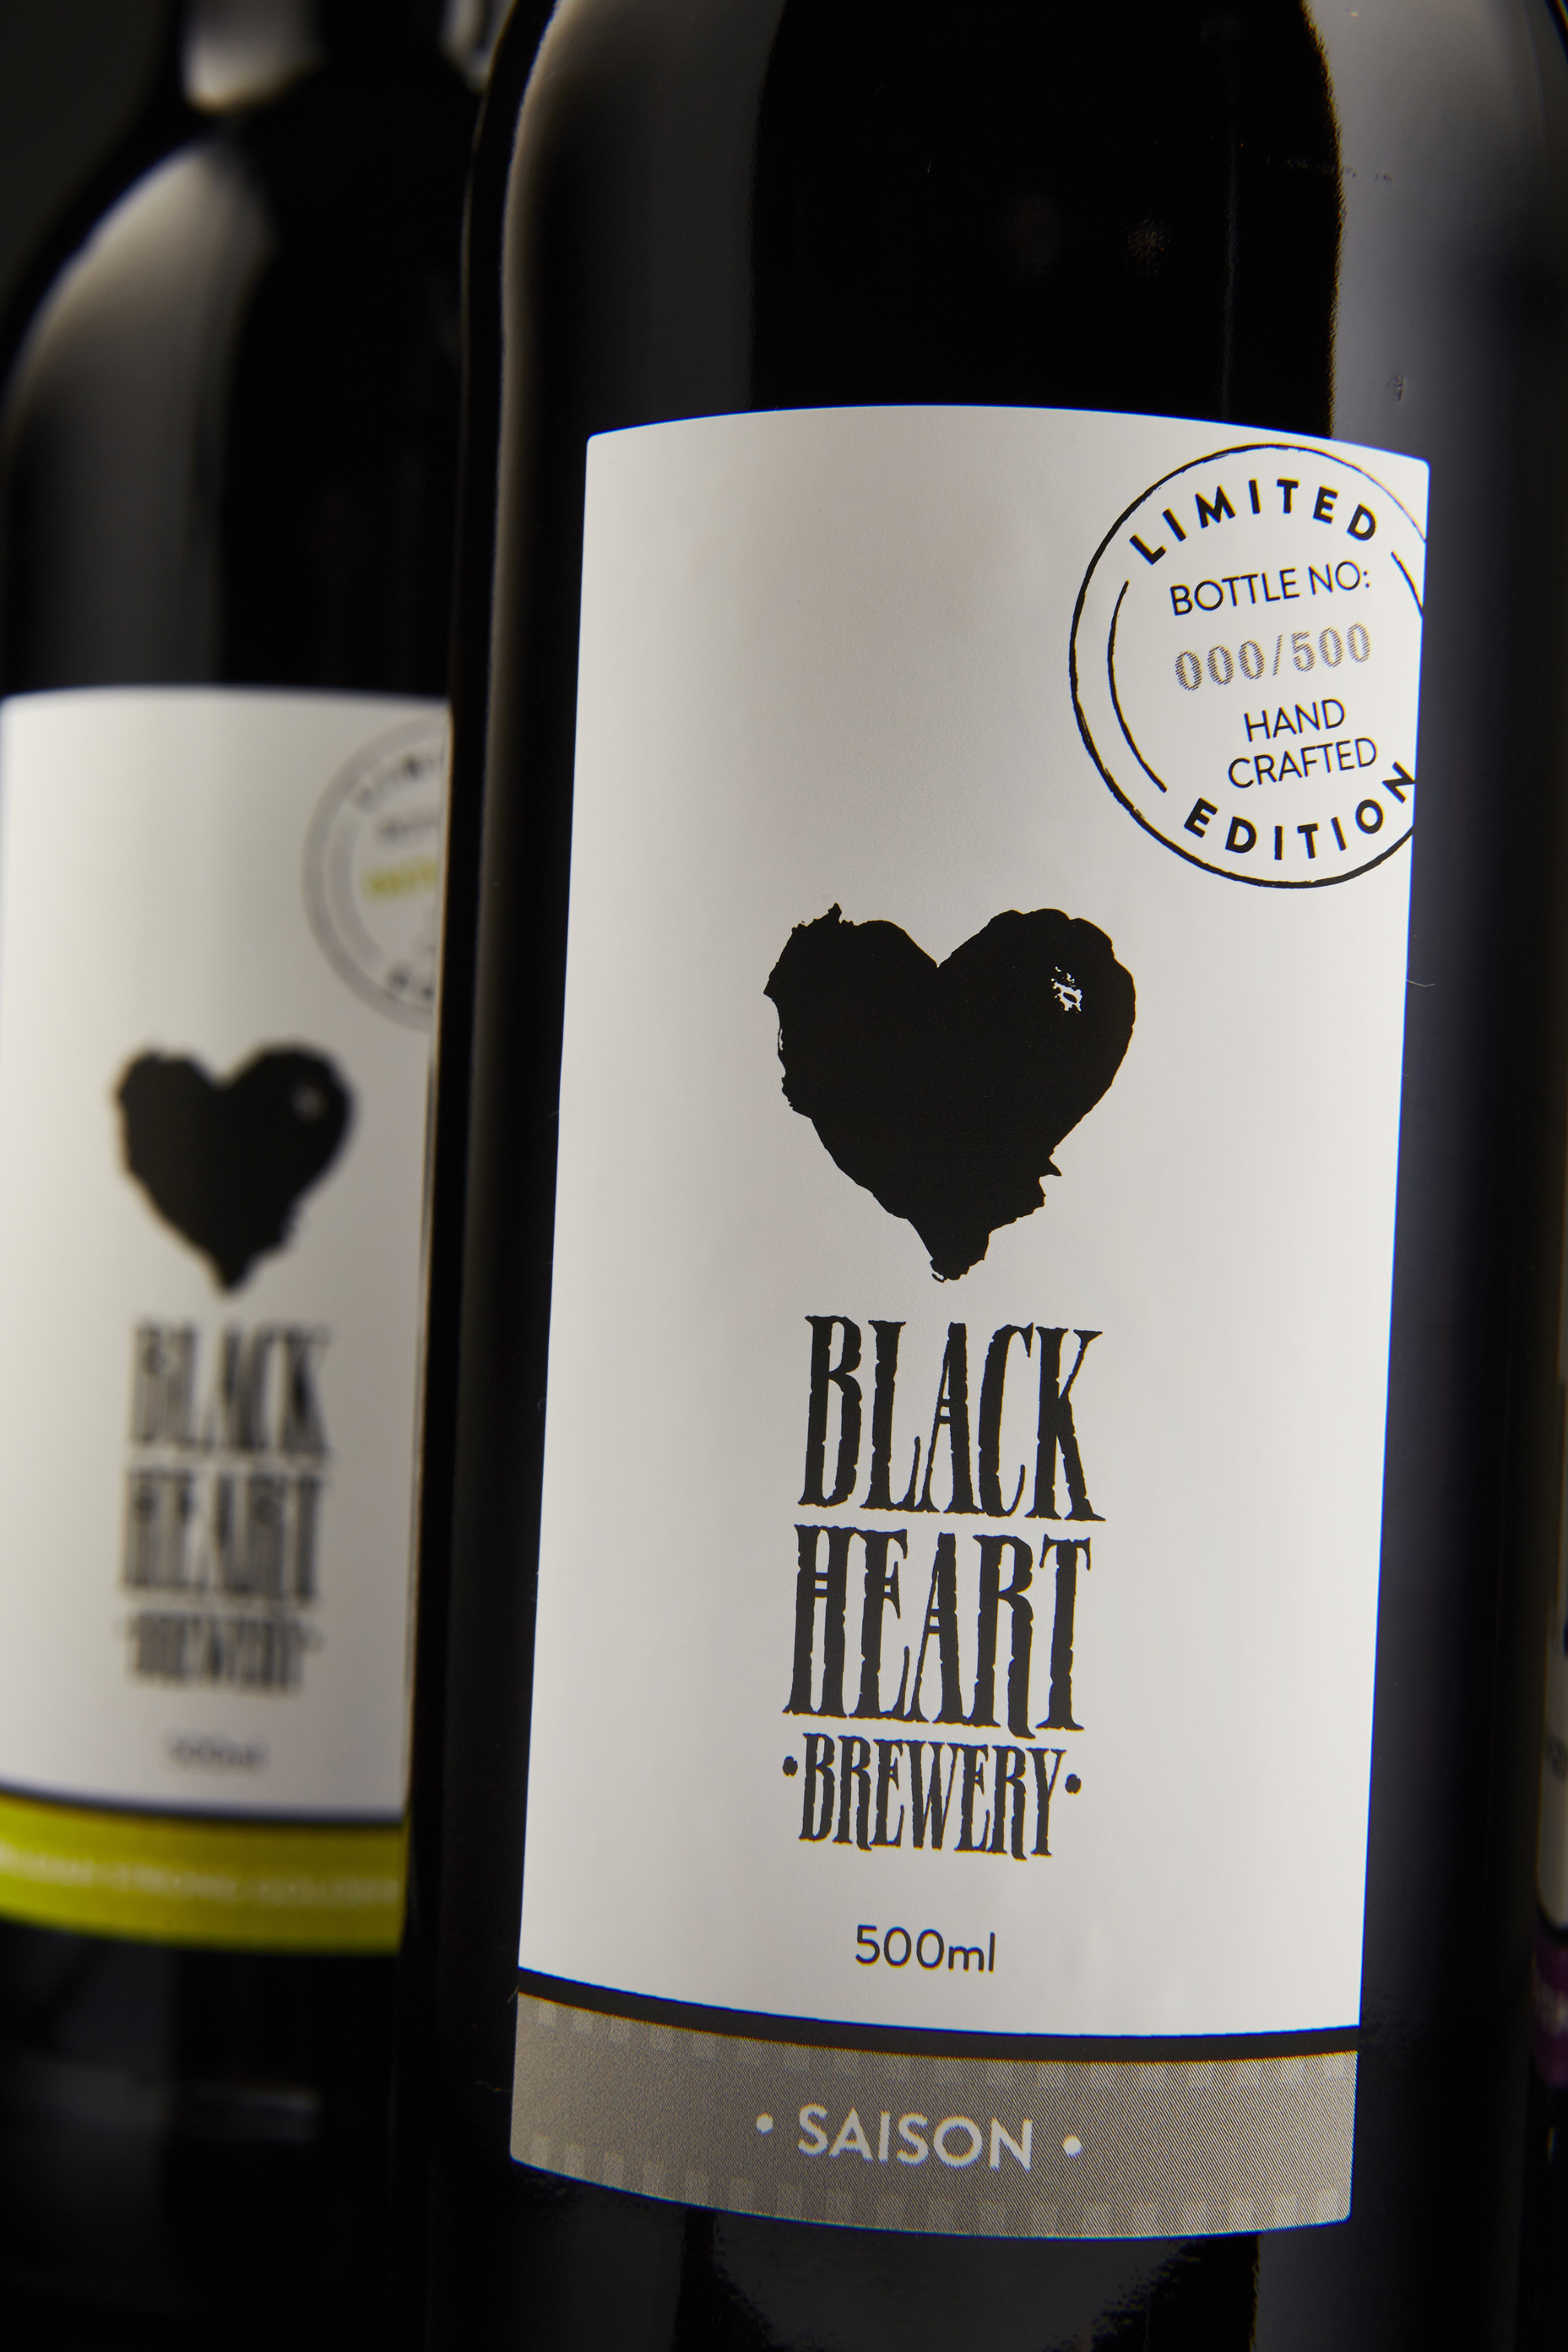 Black Heart Brewery Limited Edition